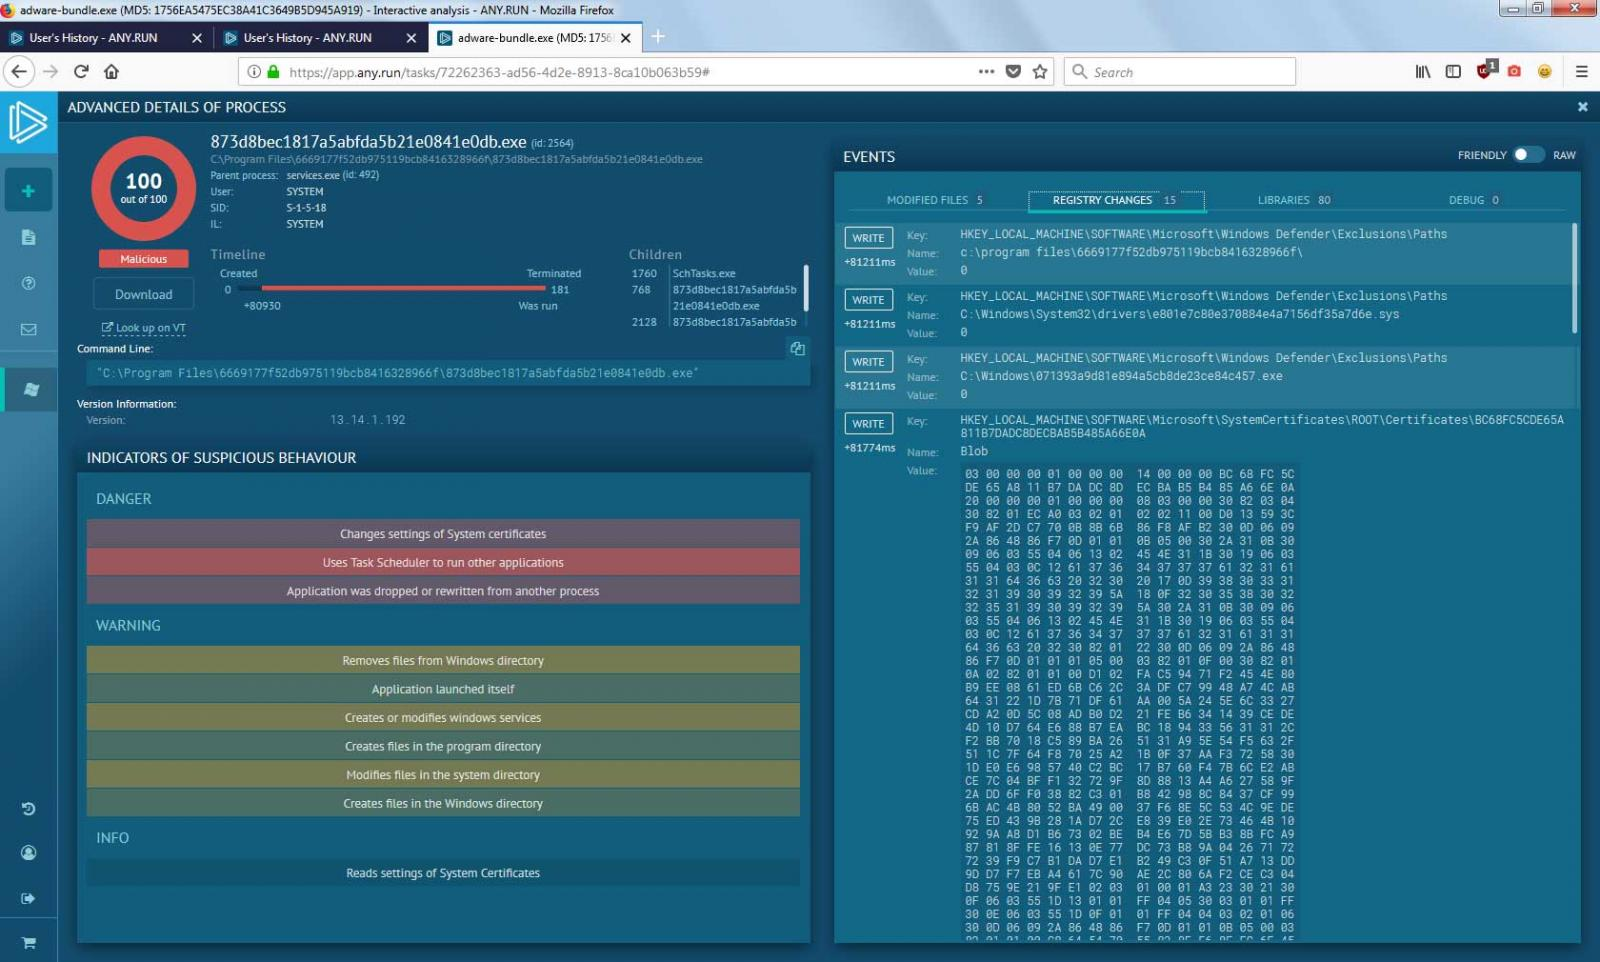 Any Run - An Interactive Malware Analysis Tool - Is Now Open